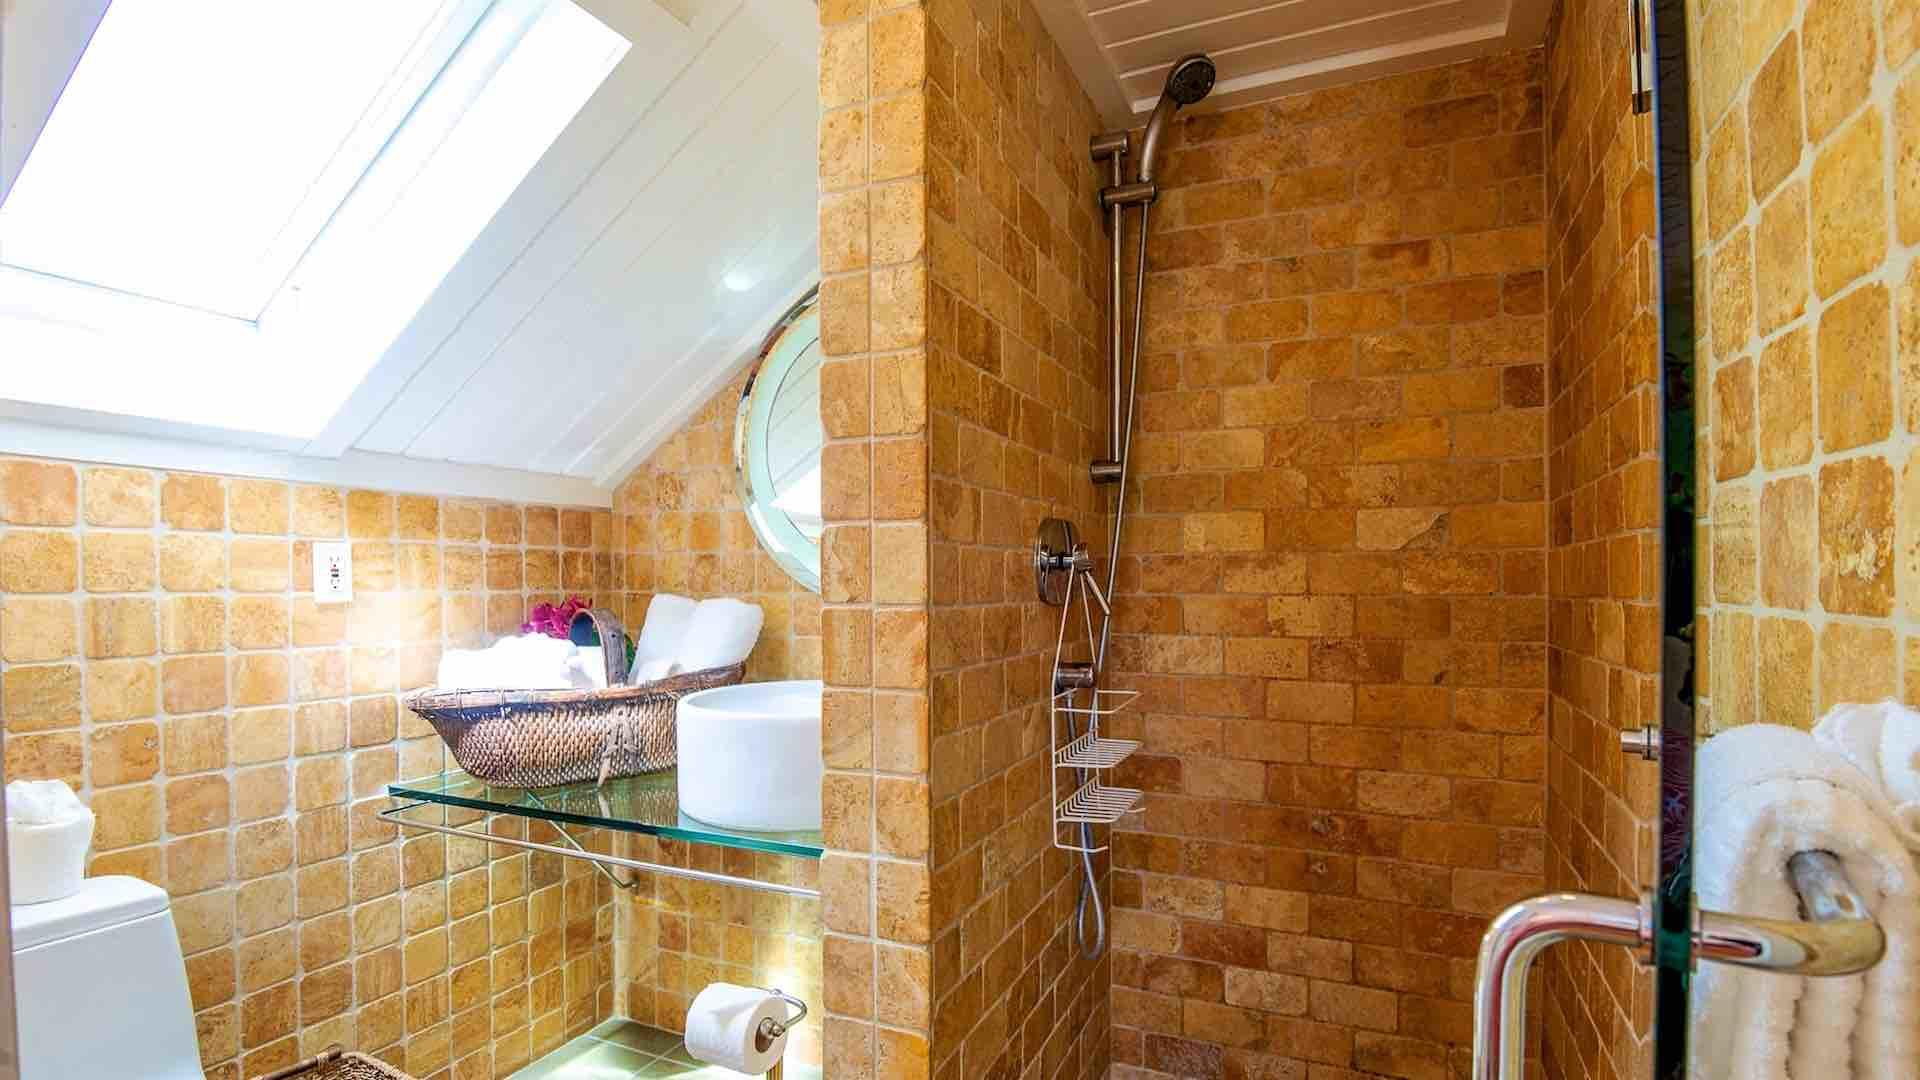 The two bedrooms on the third floor share a modern bathroom with a shower.